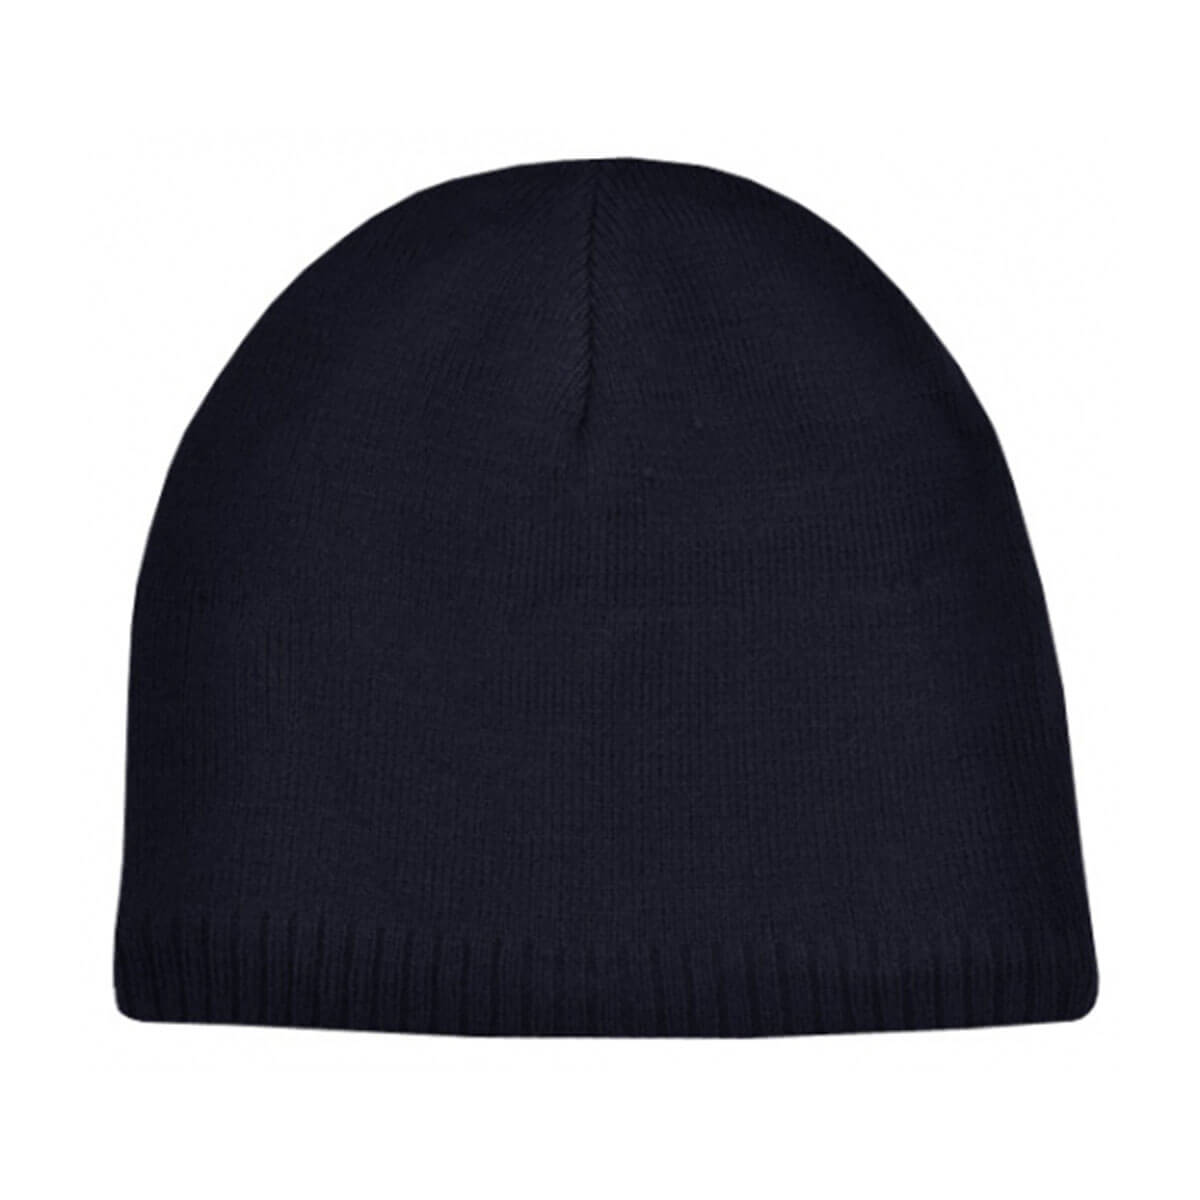 Acrylic/Polar Fleece Beanie-Navy